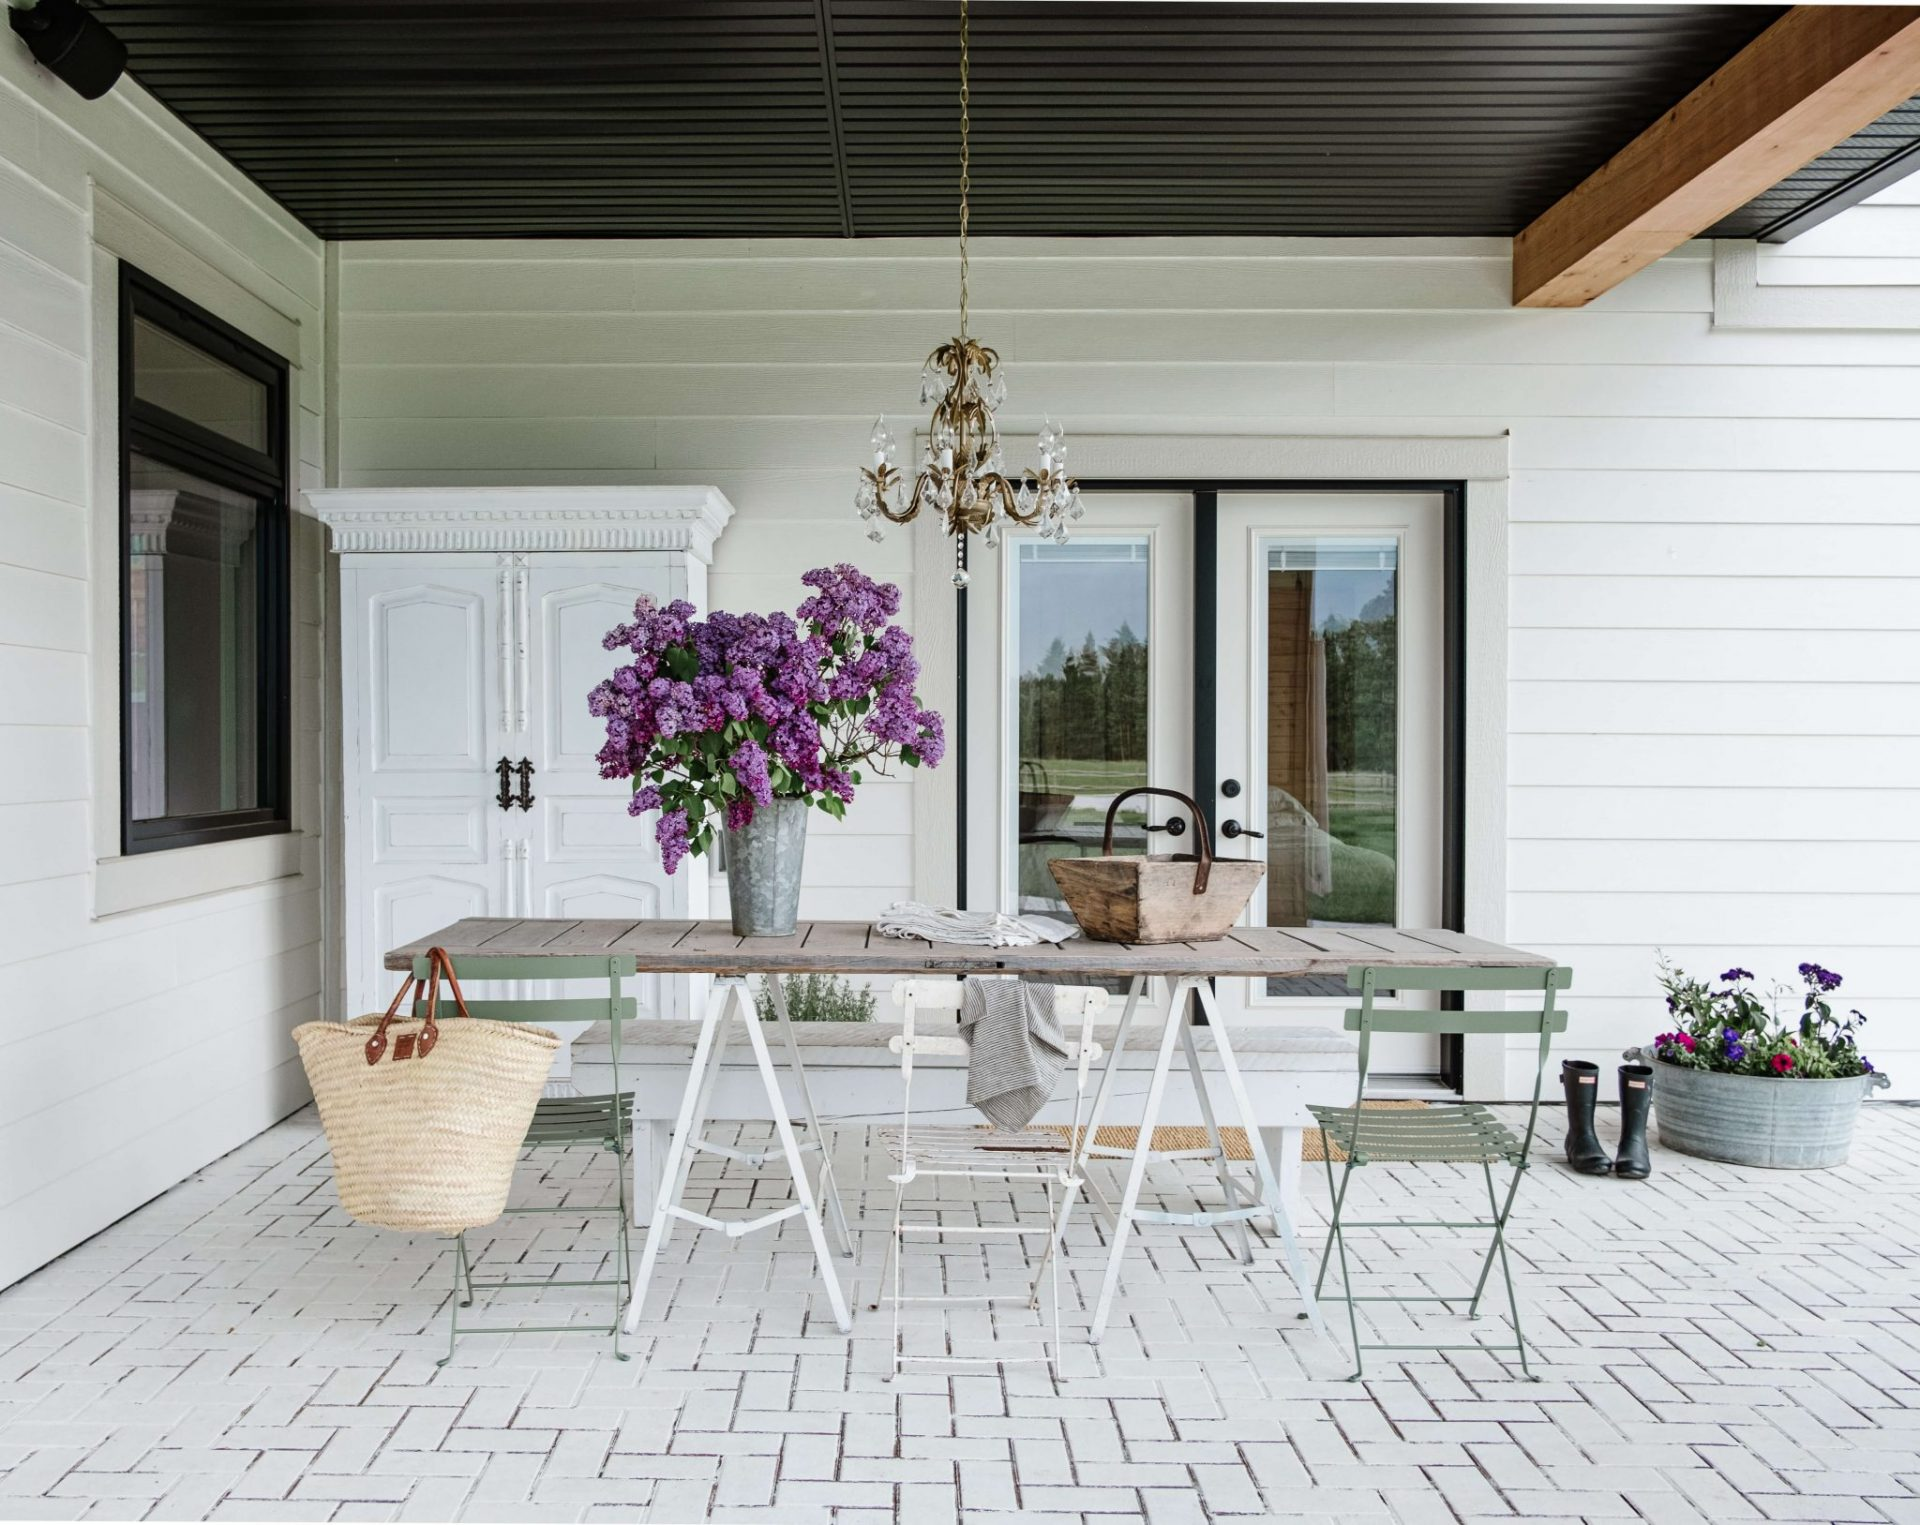 DIY projects for your patio